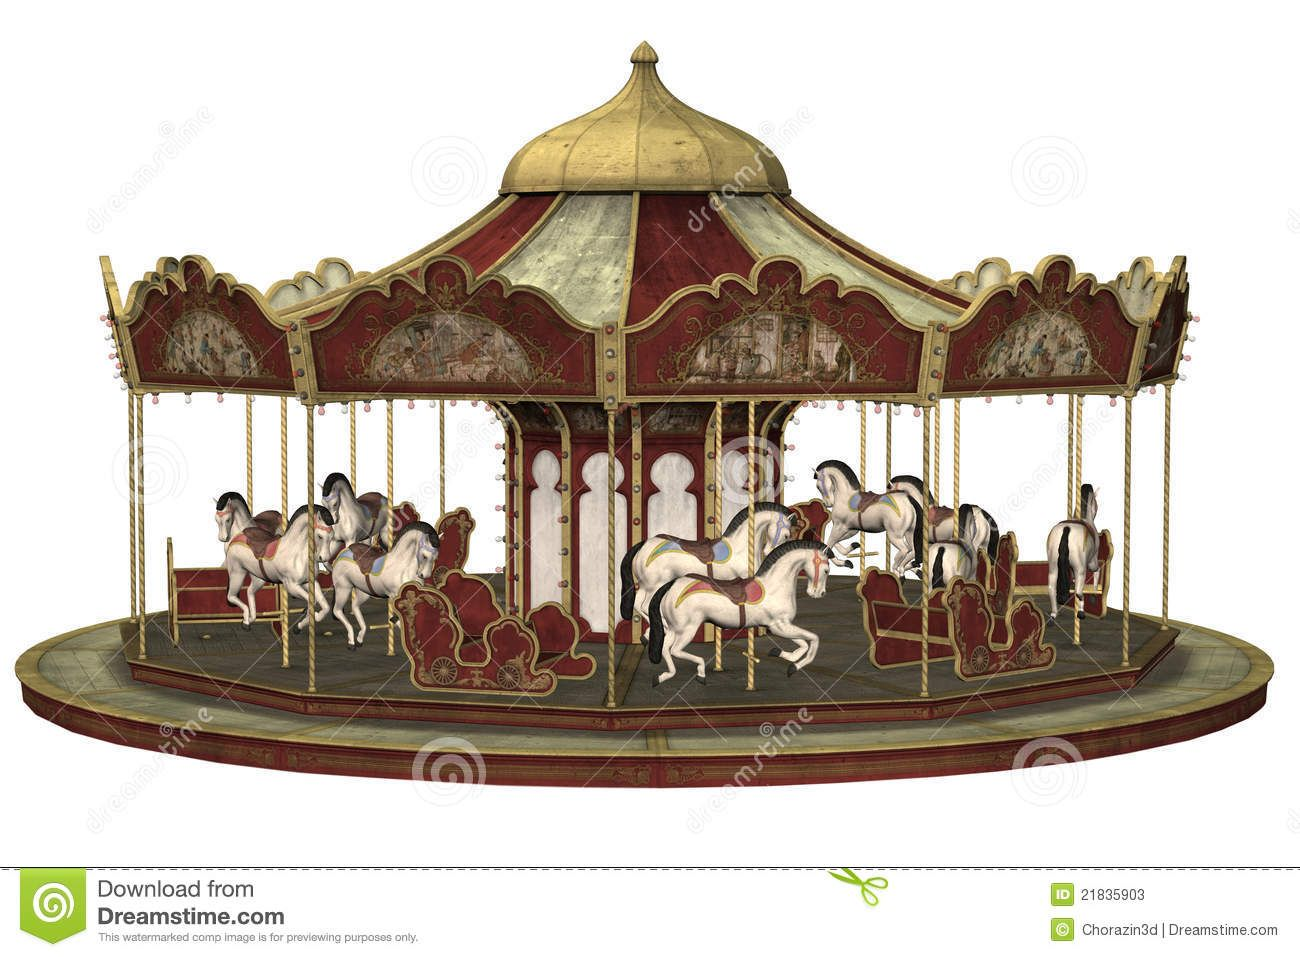 Illustration about d render. Carousel clipart victorian carousel